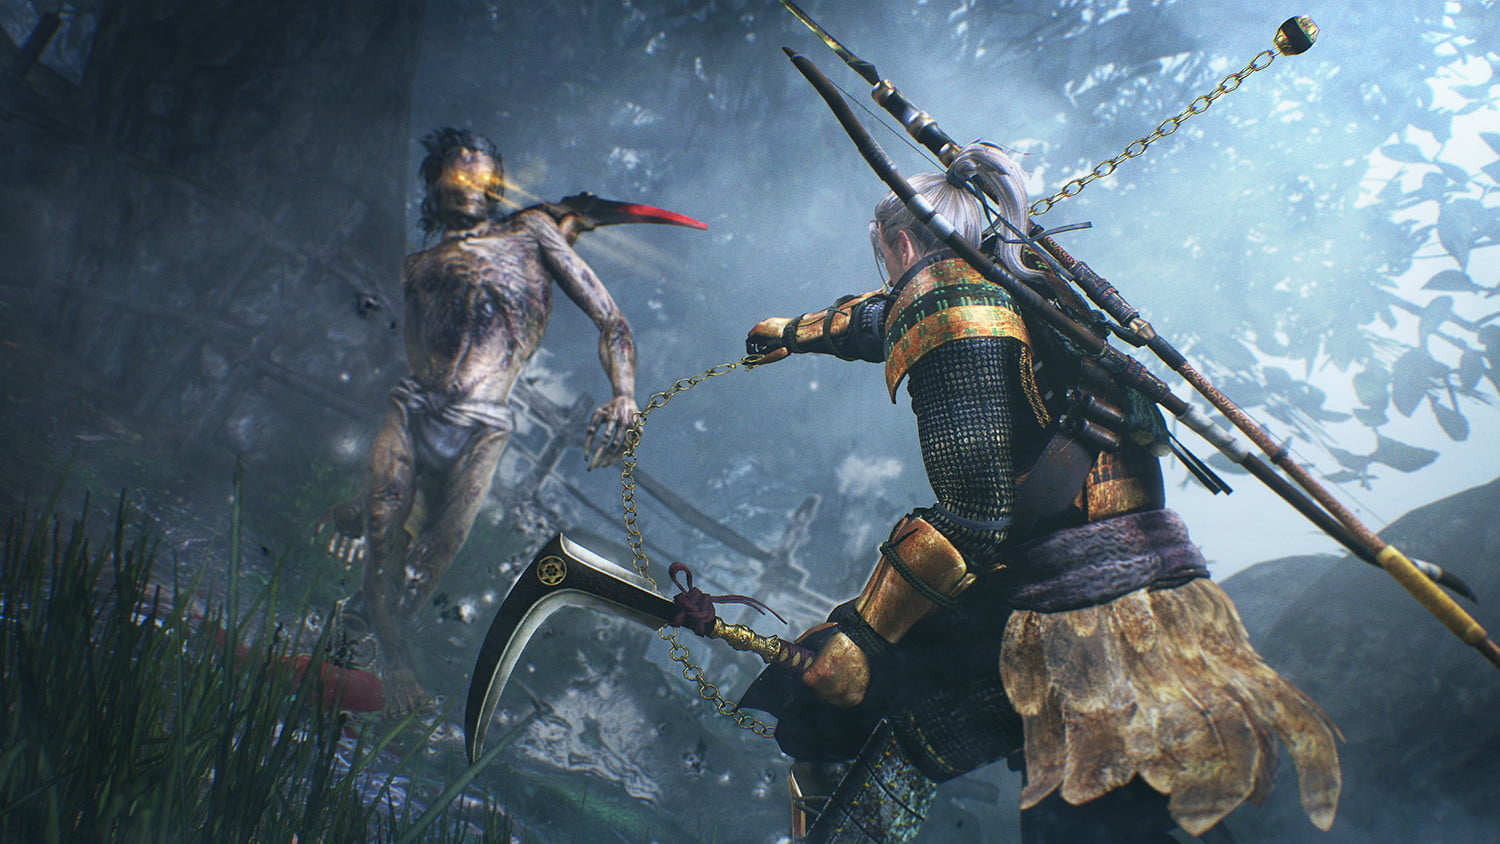 Nioh' Takes the Pain of Dark Souls to New Heights | Digital Trends